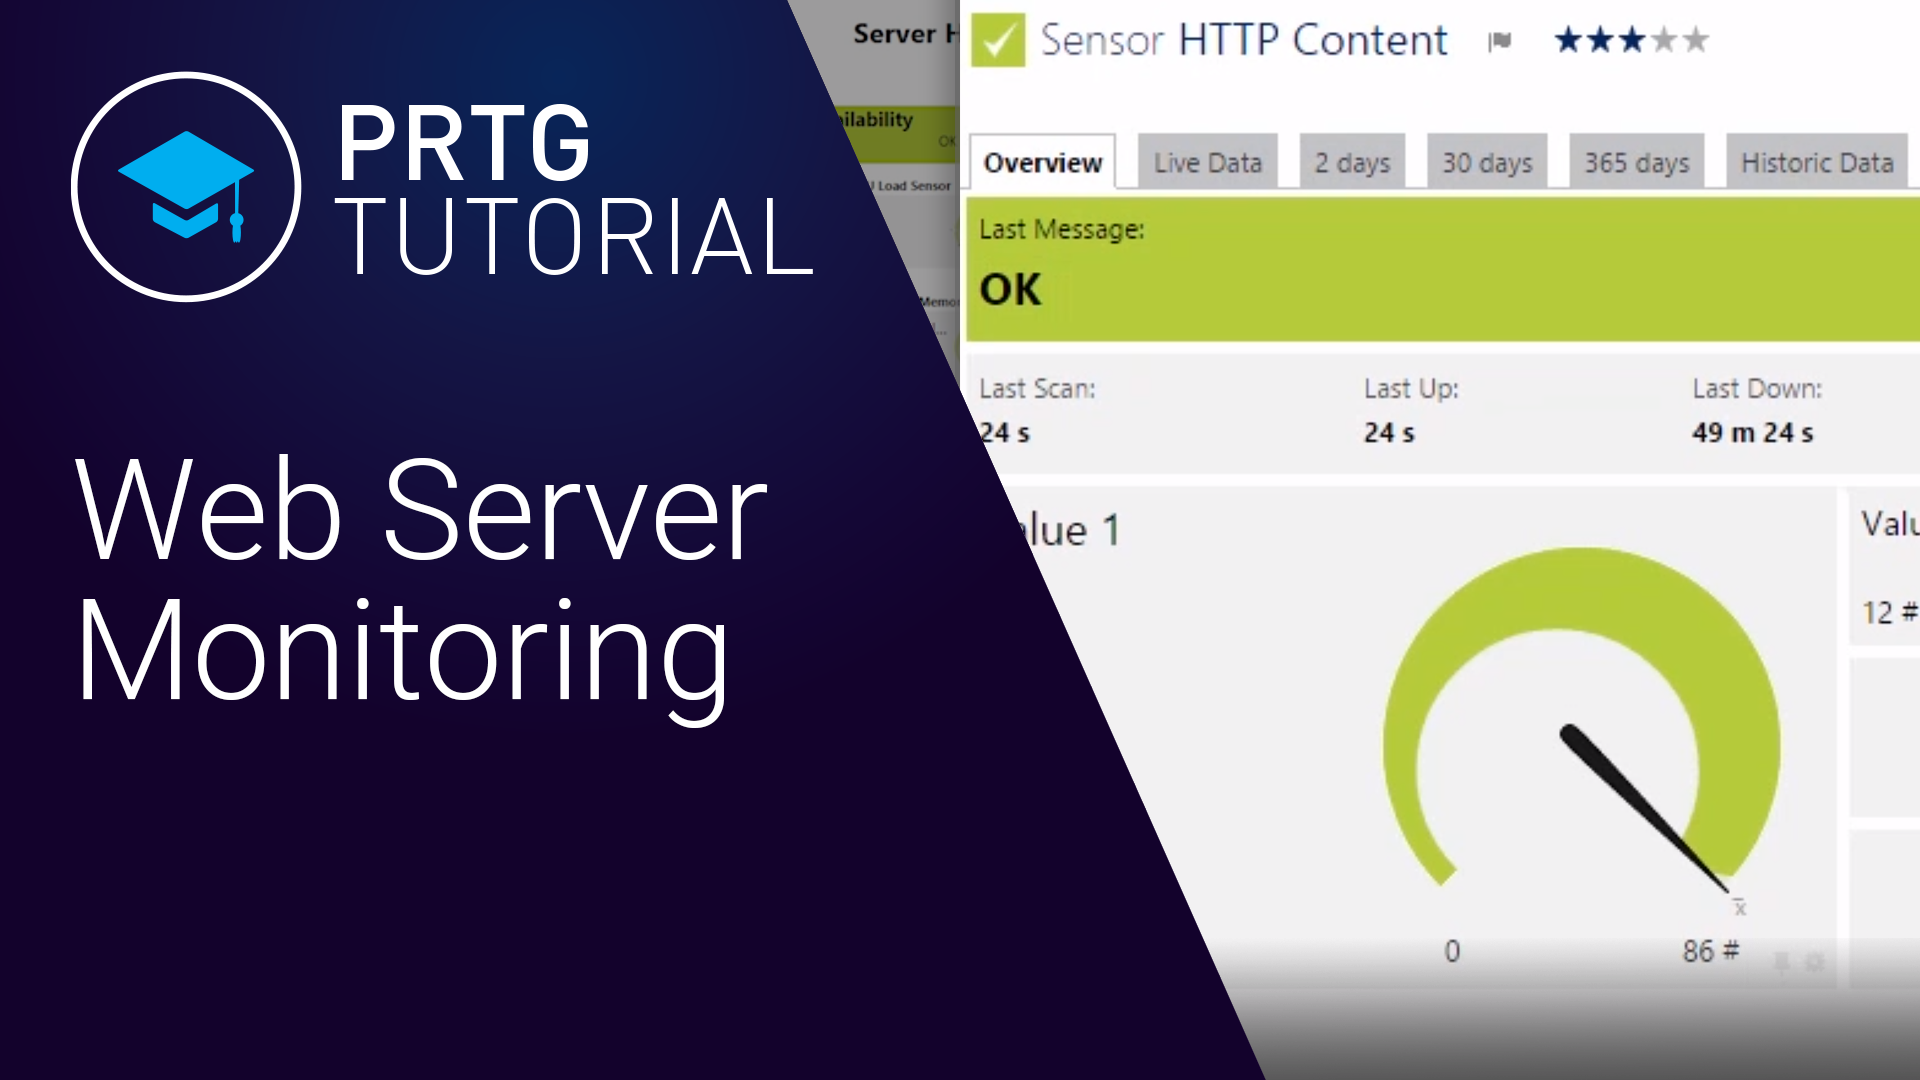 Video: PRTG - Web Server Monitoring (Videos, Network)